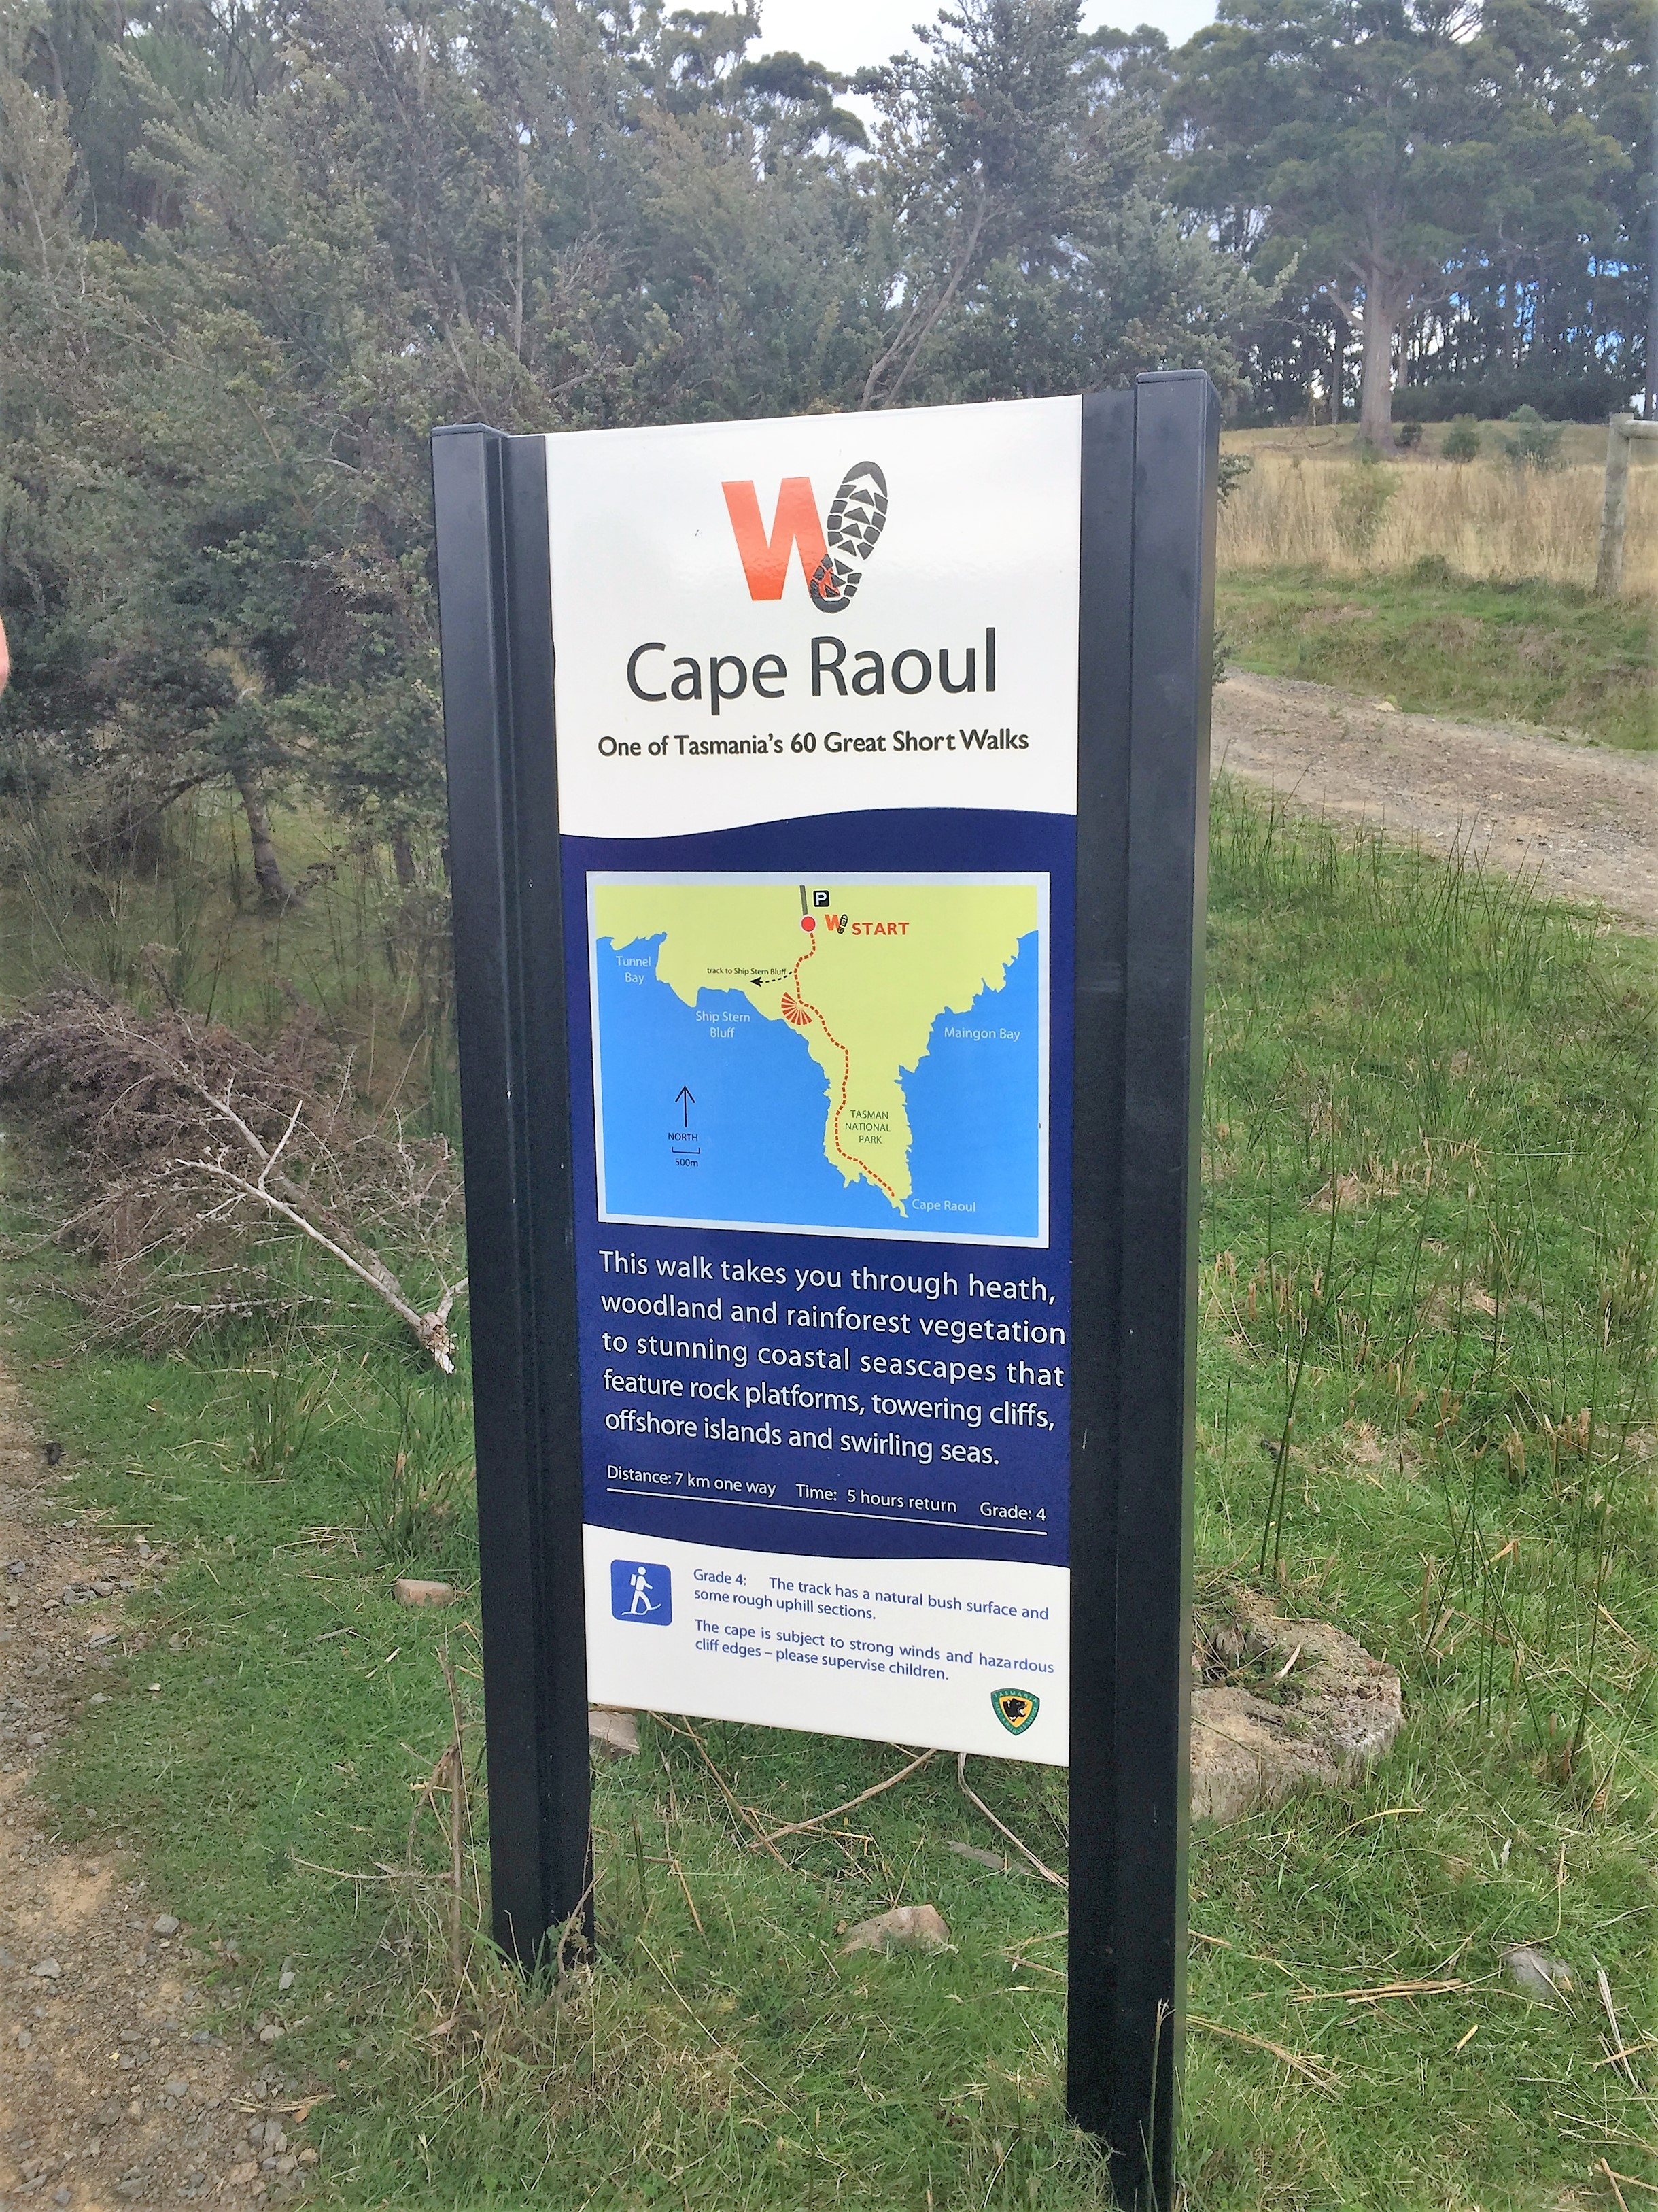 The start of Shipstern track walk which is the start of Cape Raoul walk also